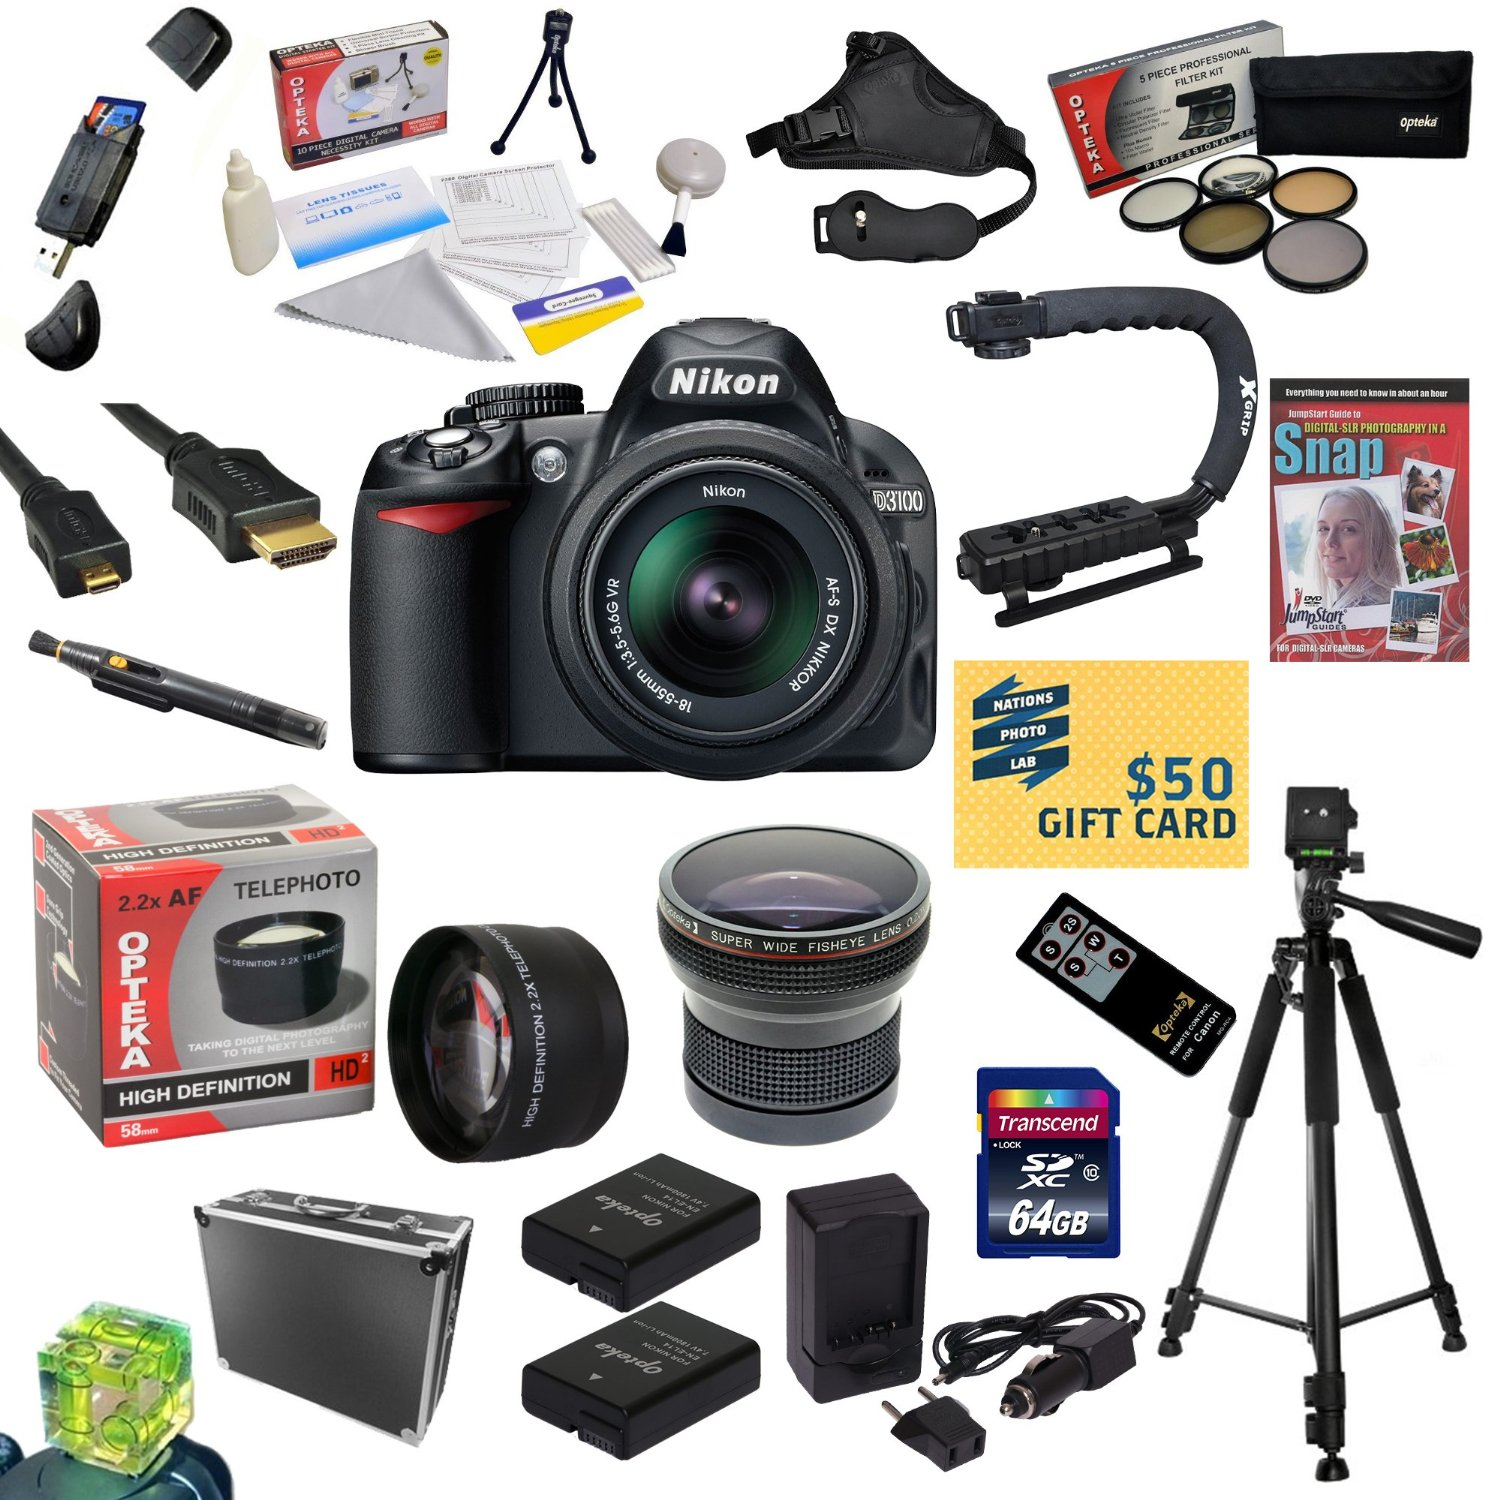 Nikon D3100 Digital SLR Camera with 18-55mm NIKKOR VR Lens With 64GB Memory Card, Reader, 2 EN-EL14, Charger, 0.20x + 2.2x Lens, 5 PC Filter Kit, Pro Case, Remote, Tripod, X-GRIP, DVD, $50 Gift Card